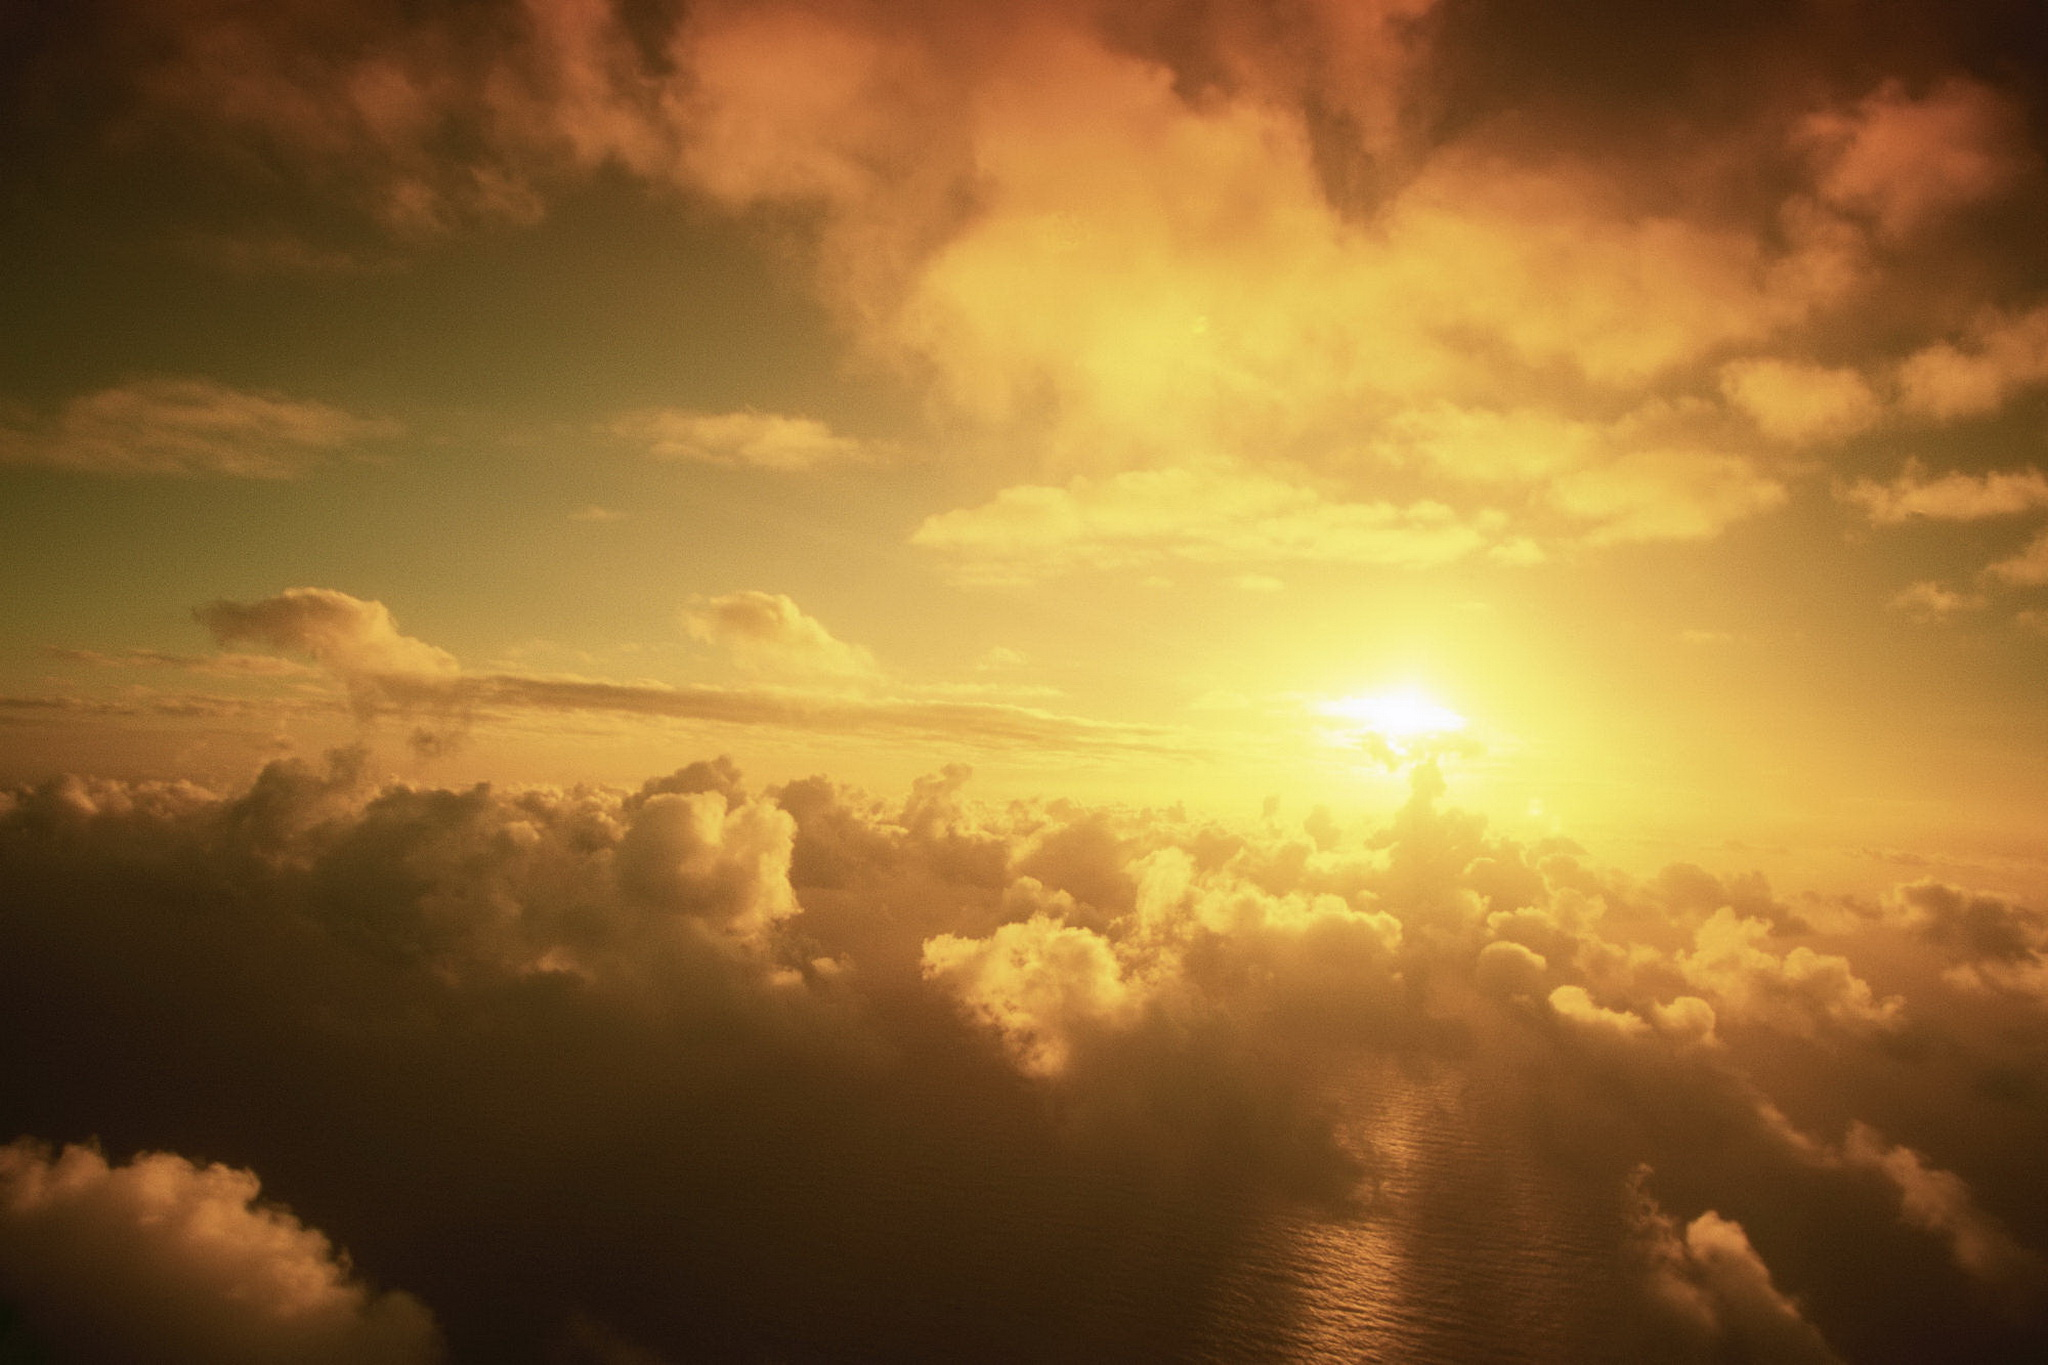 Sky, clouds and sea / 2048 x 1365 / Skyandclouds / Photography ...